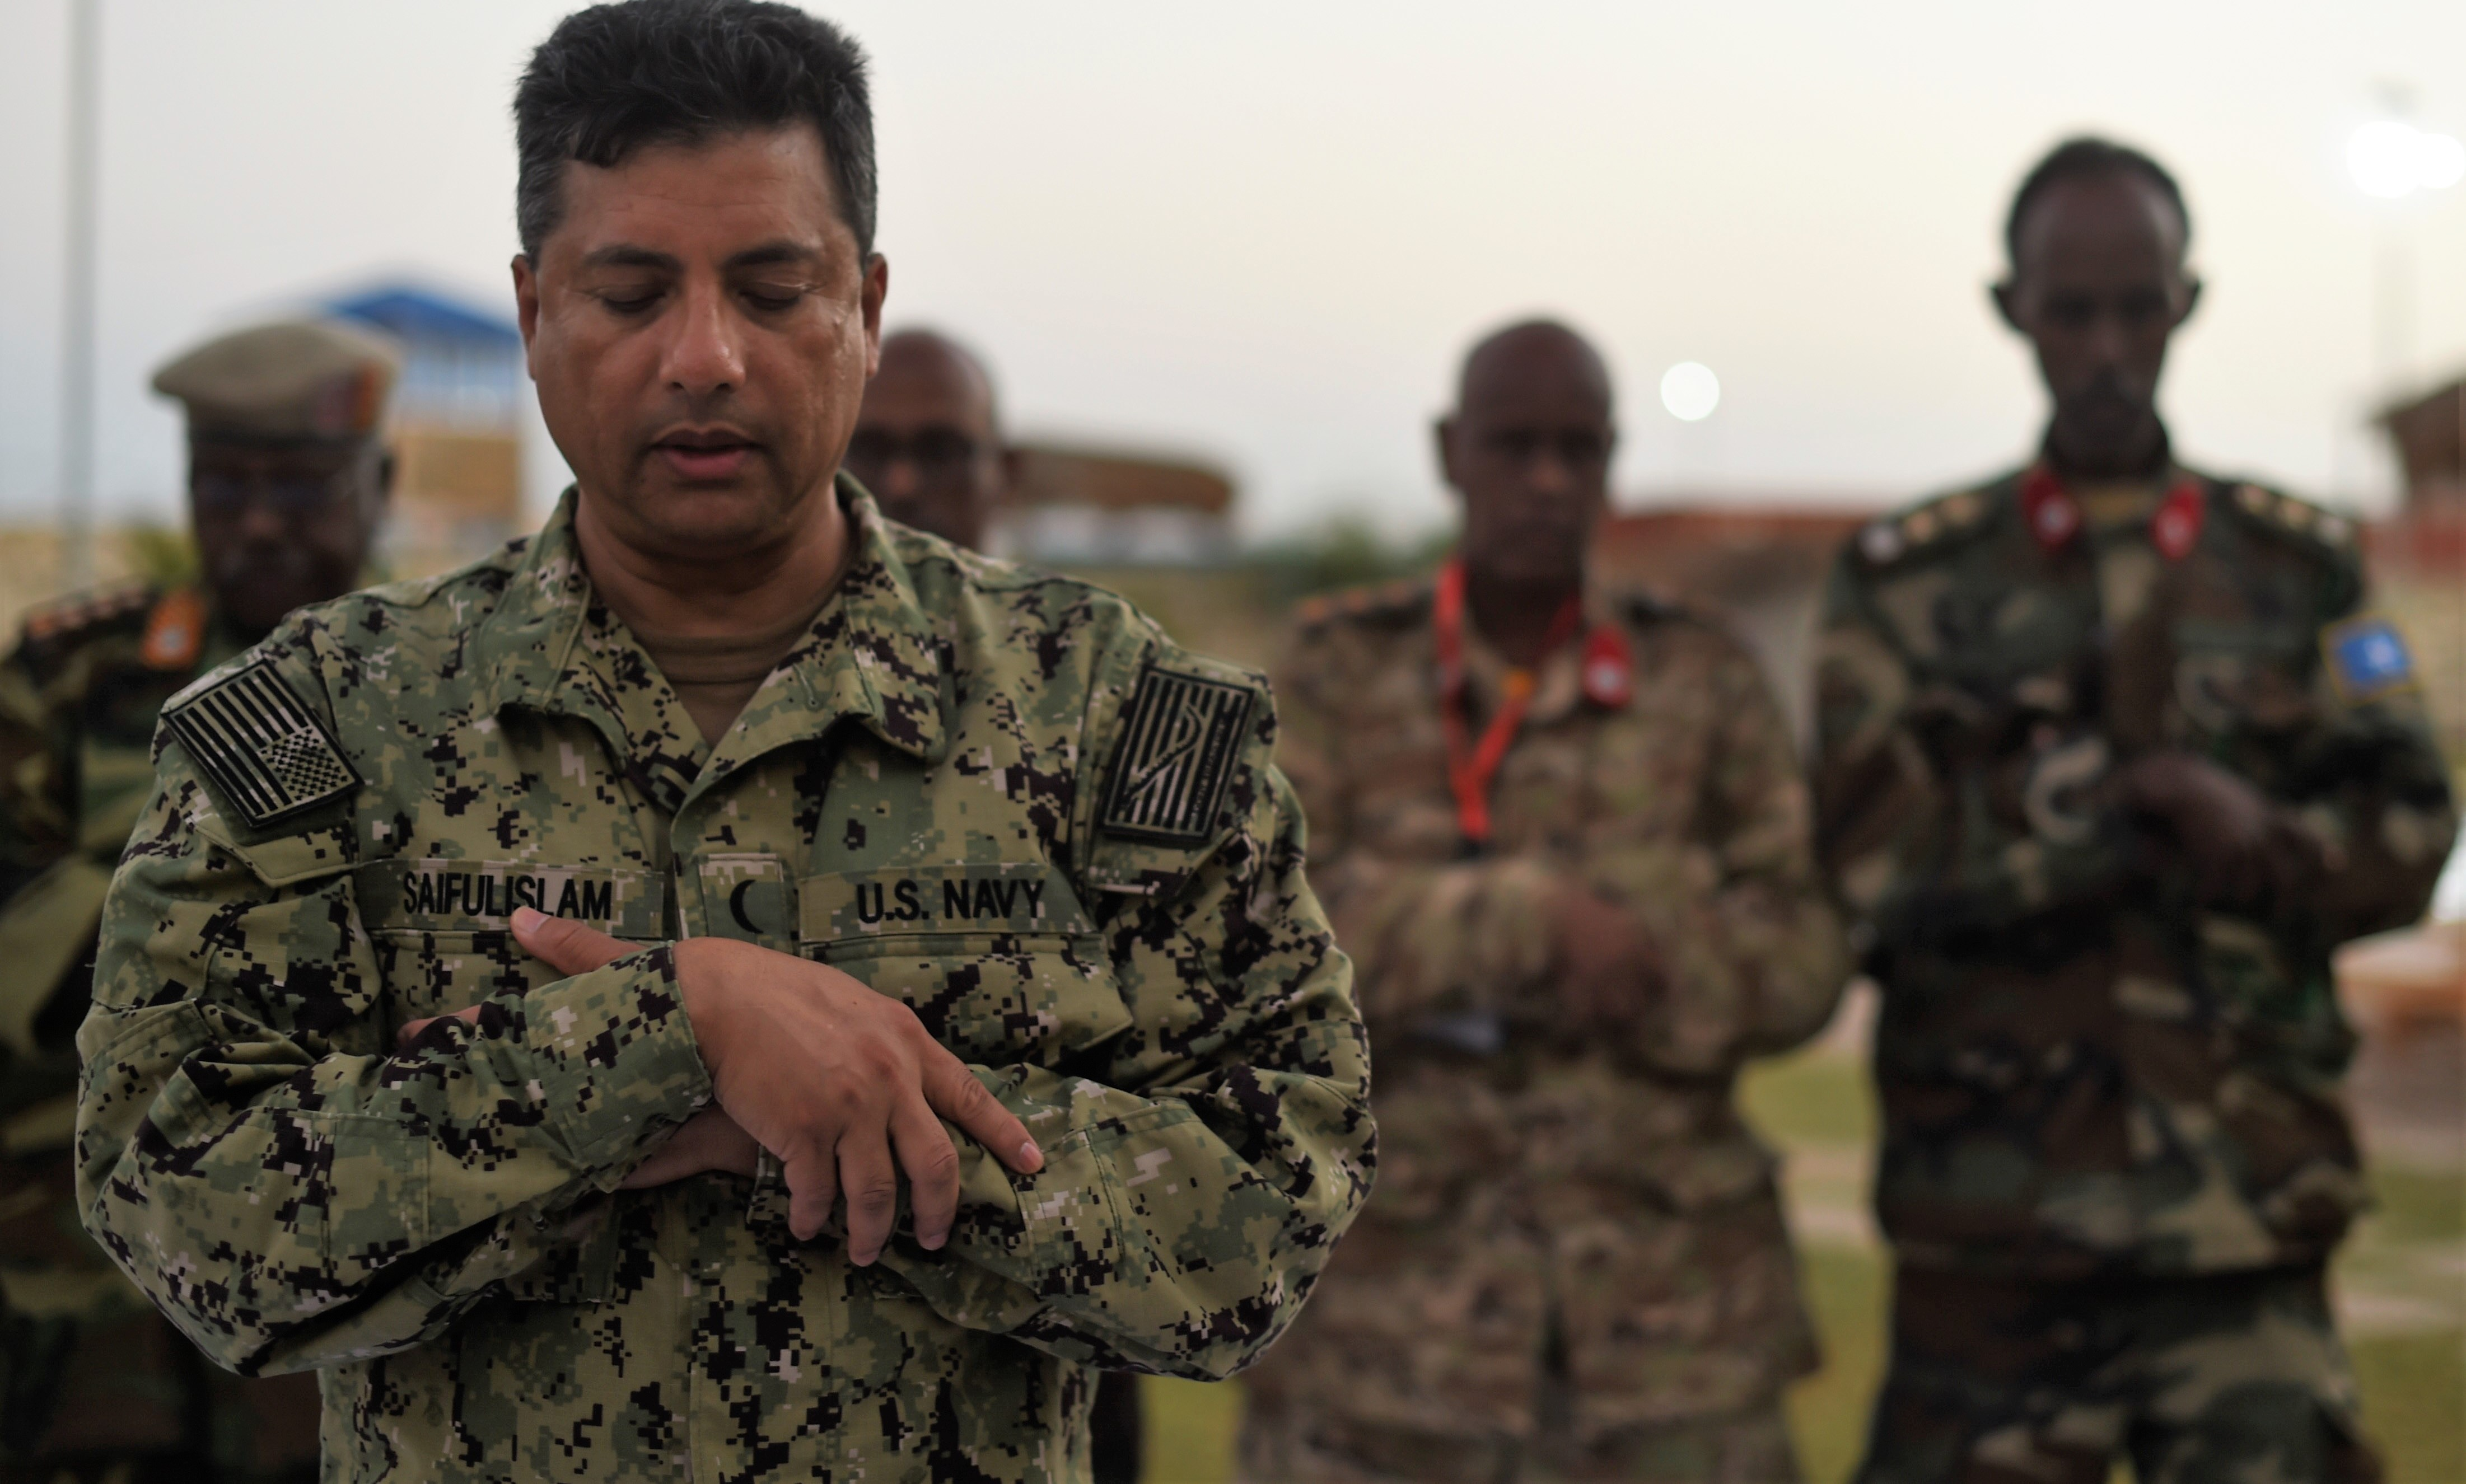 U.S. Navy Cmdr. Abuhena Saifulislam, U.S. Africa Command deputy command chaplain, leads a prayer before an Iftar with members of the Somali National Army at the Mogadishu International Airport, Mogadishu, Somalia, June 5, 2017. This was the first Iftar held between U.S. and SNA military personnel. Additionally, it was the first led by a U.S. Imam, who is a leader in the Islamic faith.(U.S. Air Force Photo by Staff Sgt. Eboni Prince/Released)